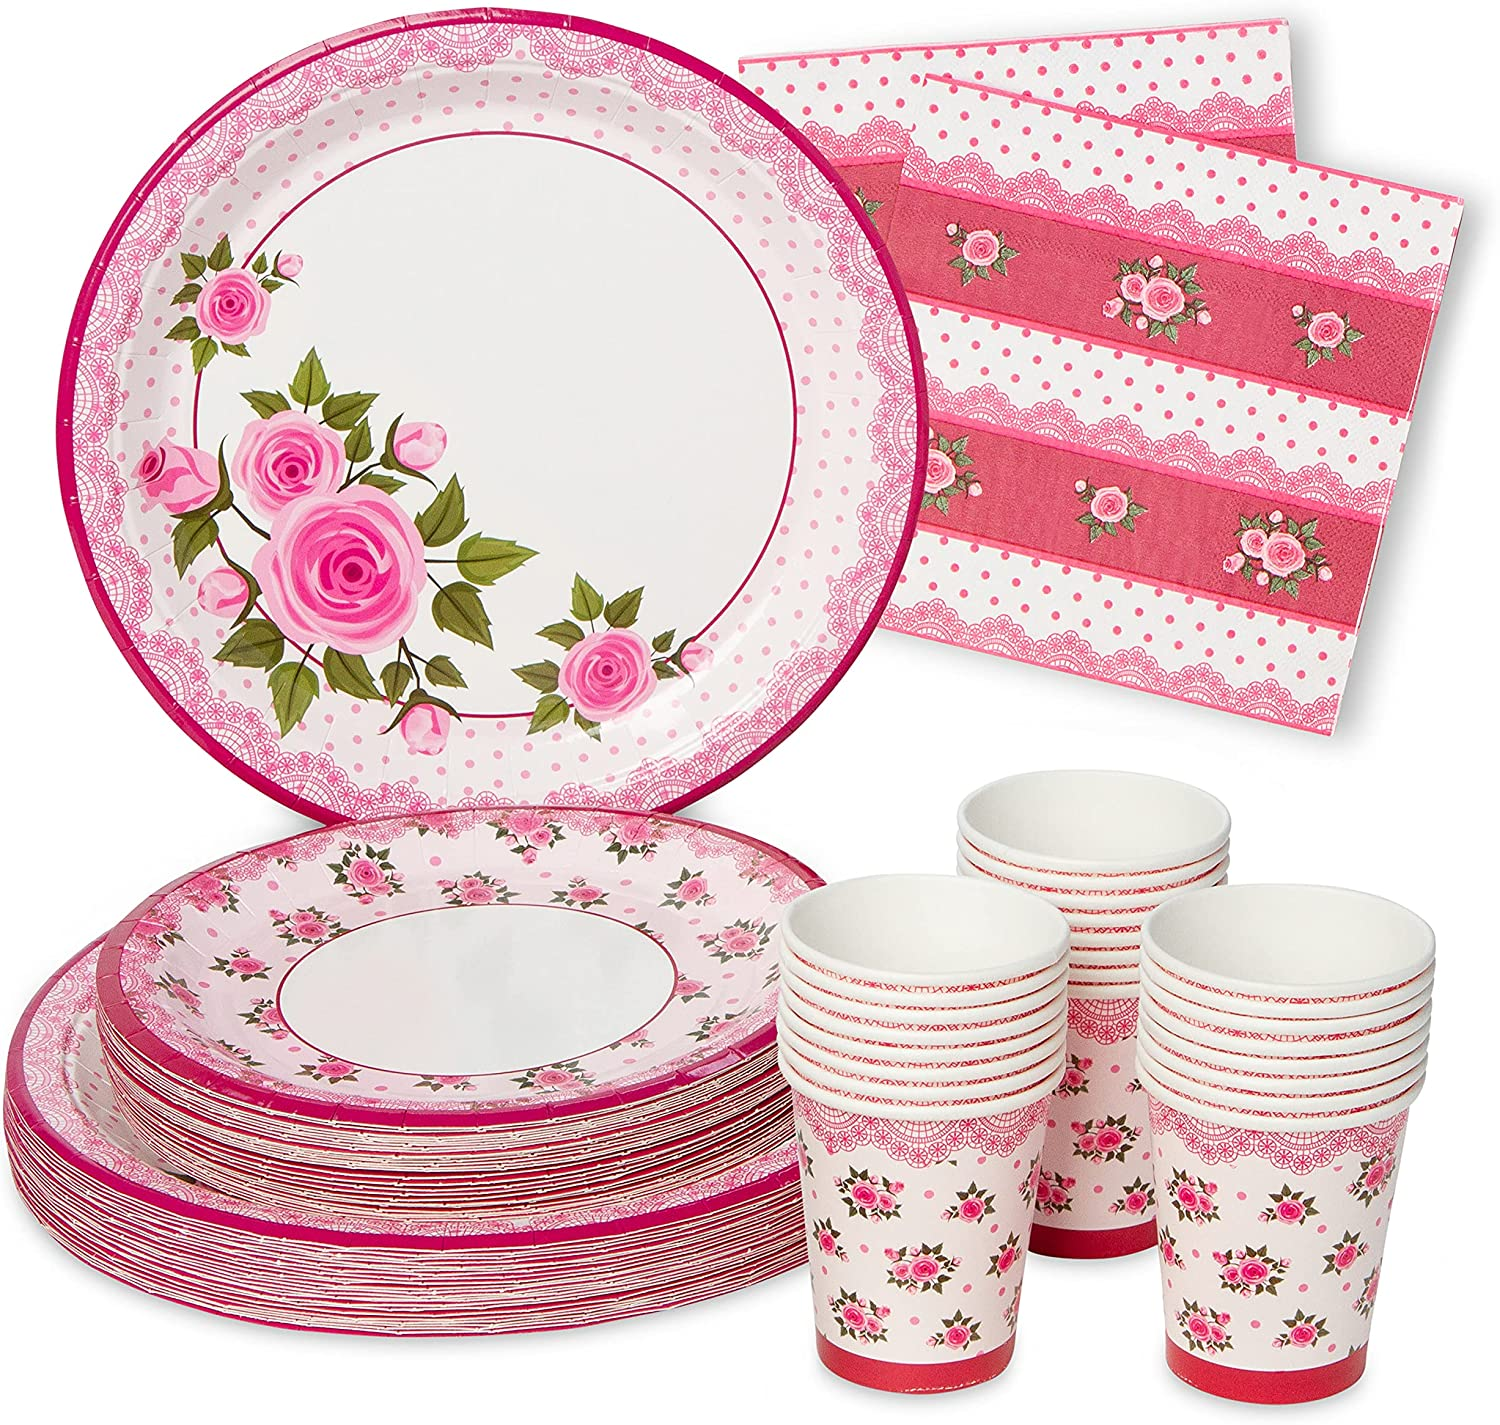 Royal Magnolia Floral Party Supplies - Set of 24 - Rose Paper Plates (7 and 9 Inch), Paper Napkins and Party Cups - Disposable Flower Theme Dinnerware Set for Birthday, Baby Shower, Bachelorette Party